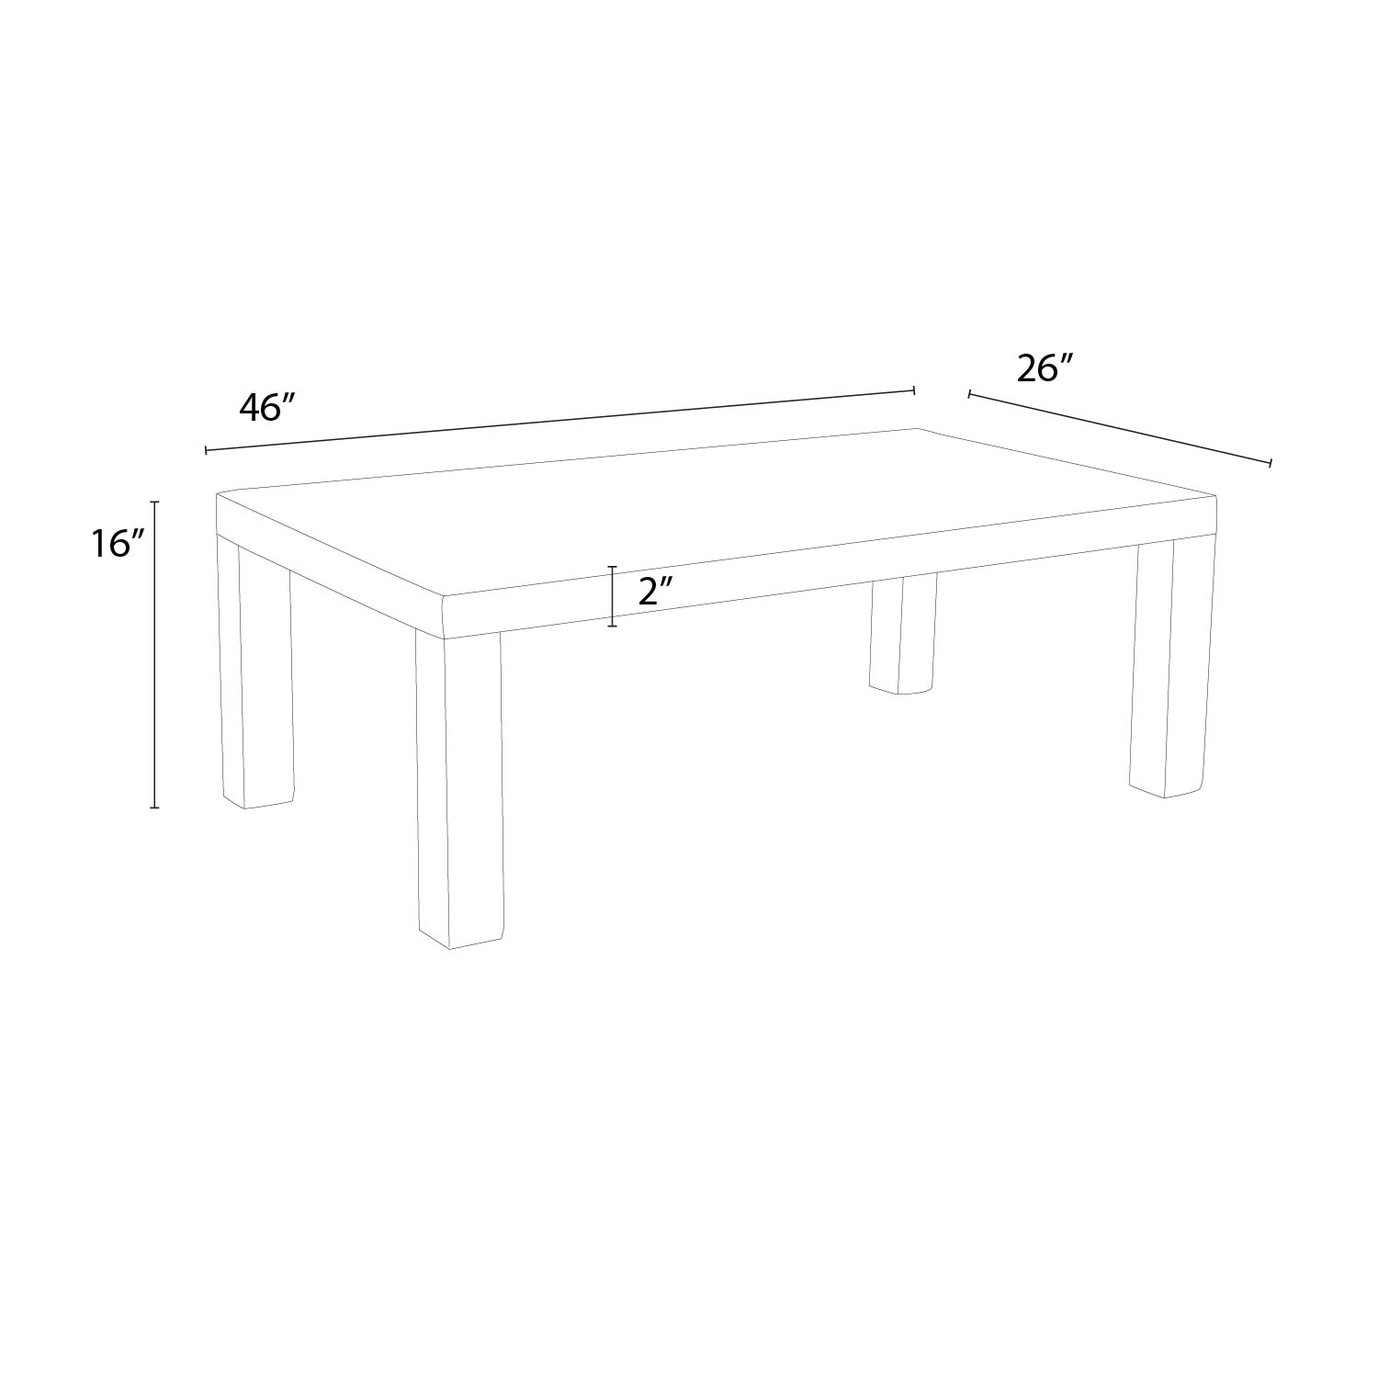 Deco™ 26x46 Coffee Table